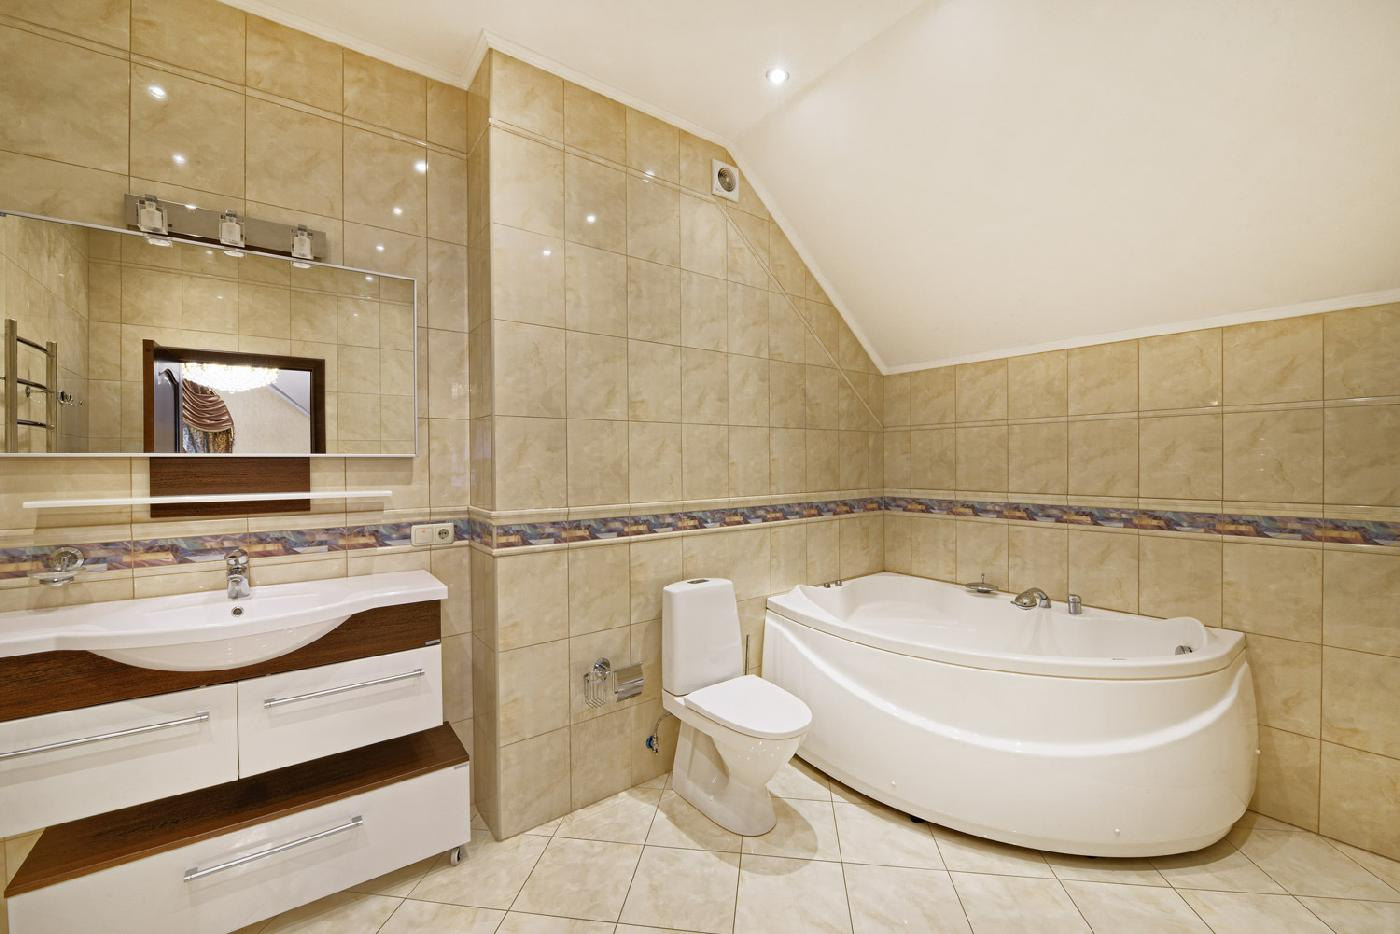 Another Example of Bathroom Remodeling